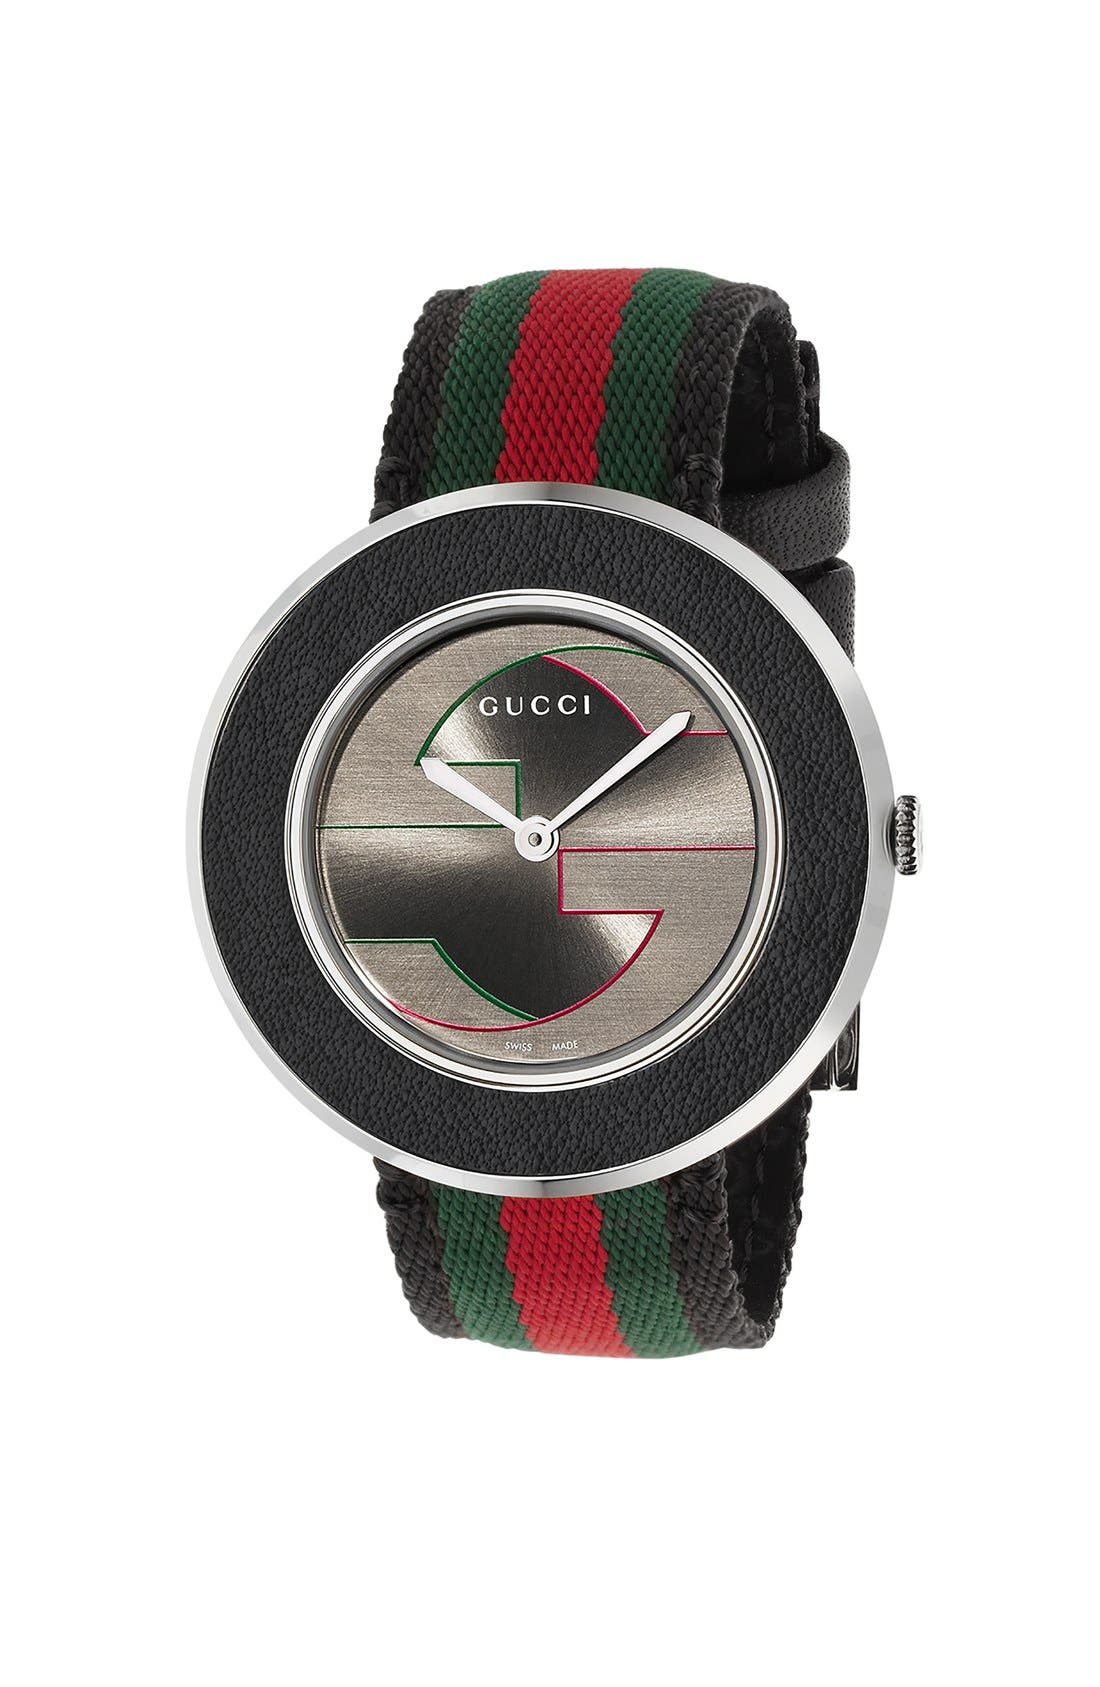 Main Image - Gucci 'U-Play' Round Fabric Strap Watch, 33mm